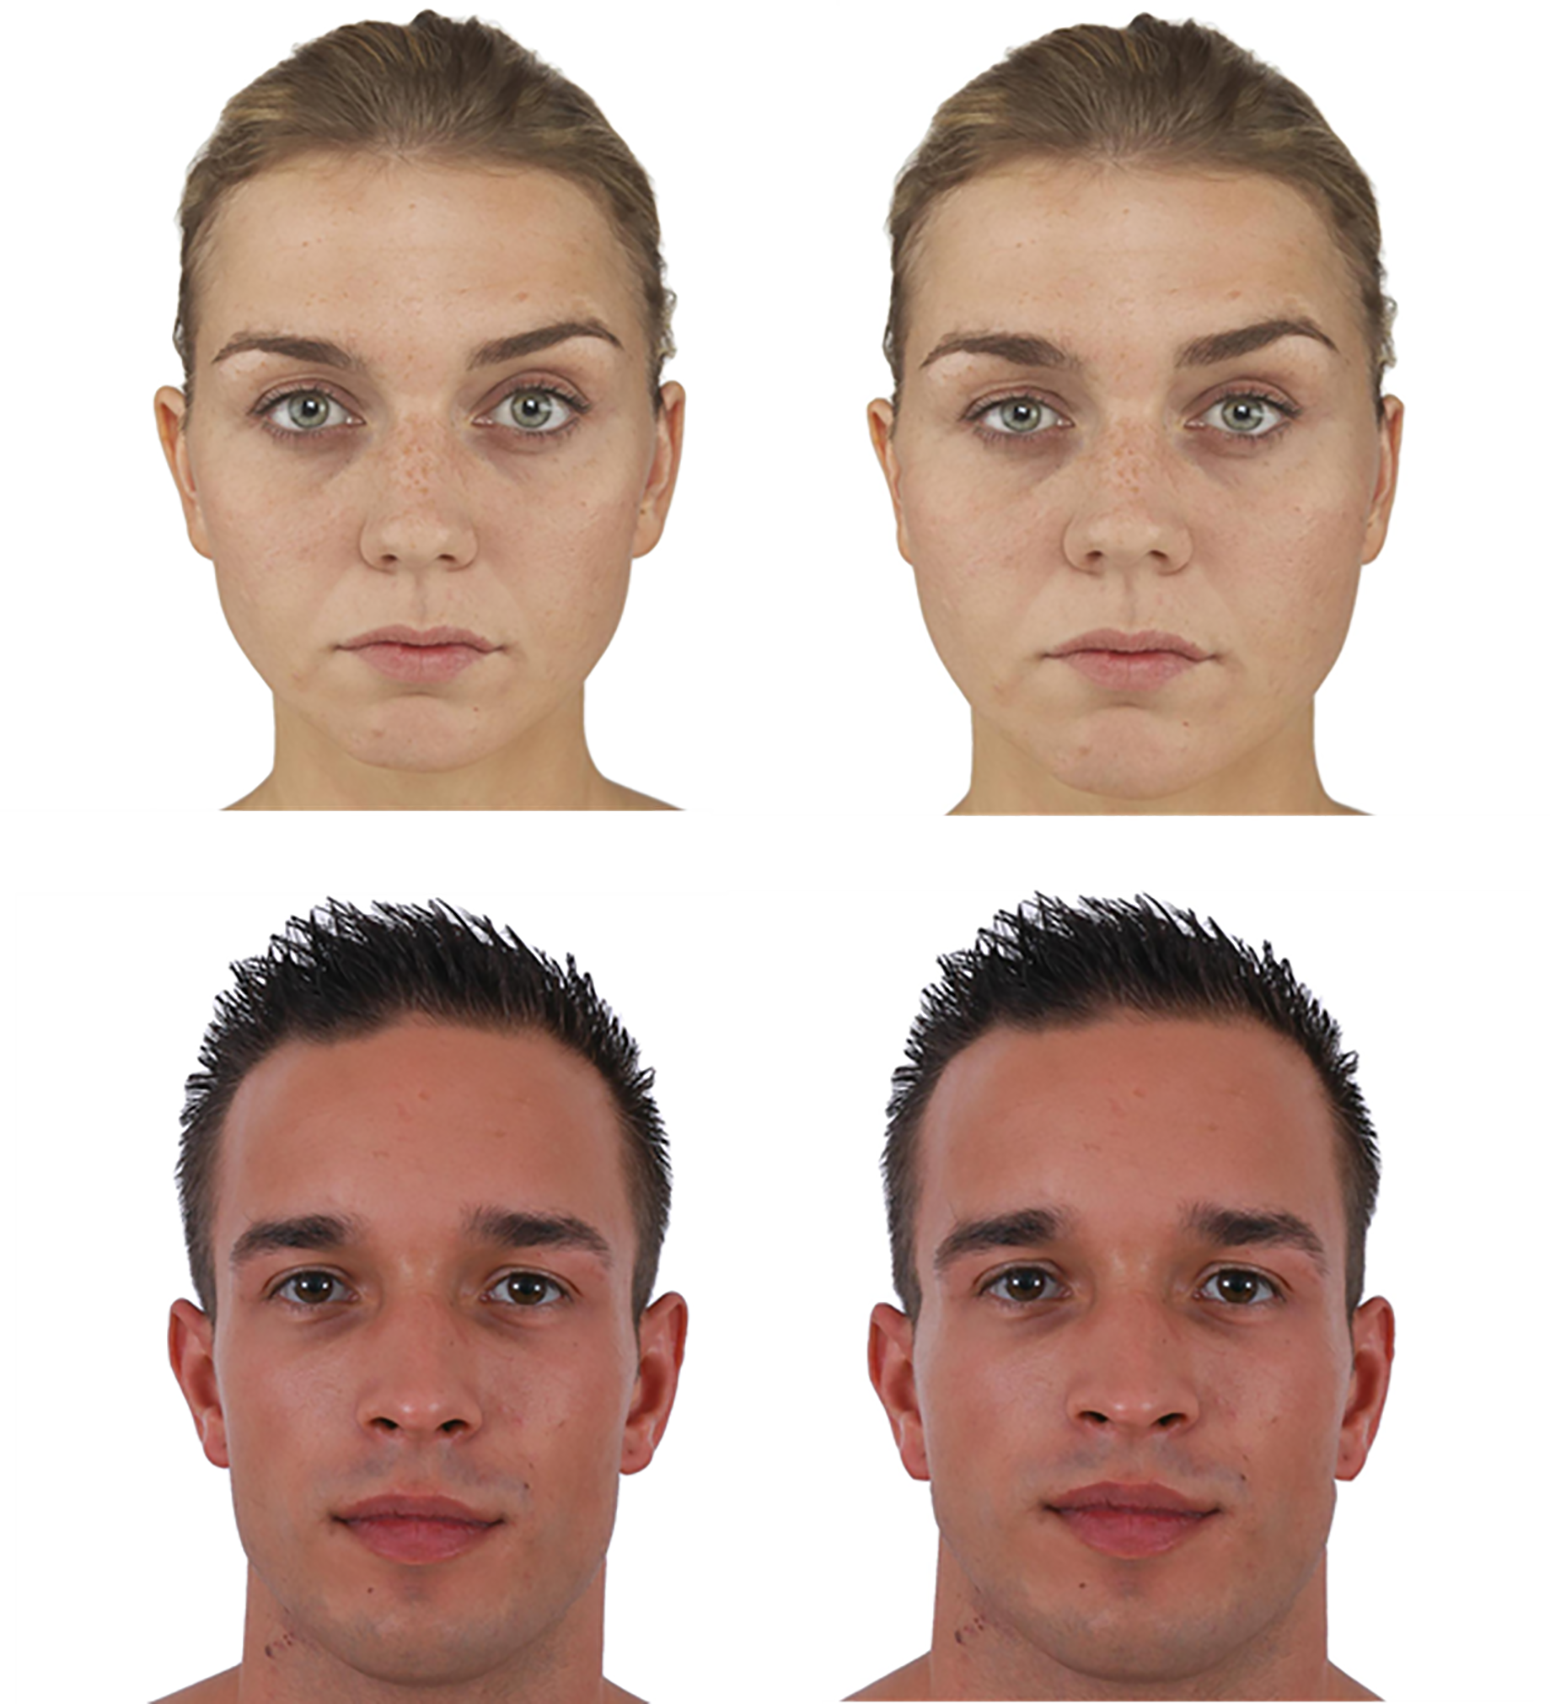 Nickson et al. Test Faces